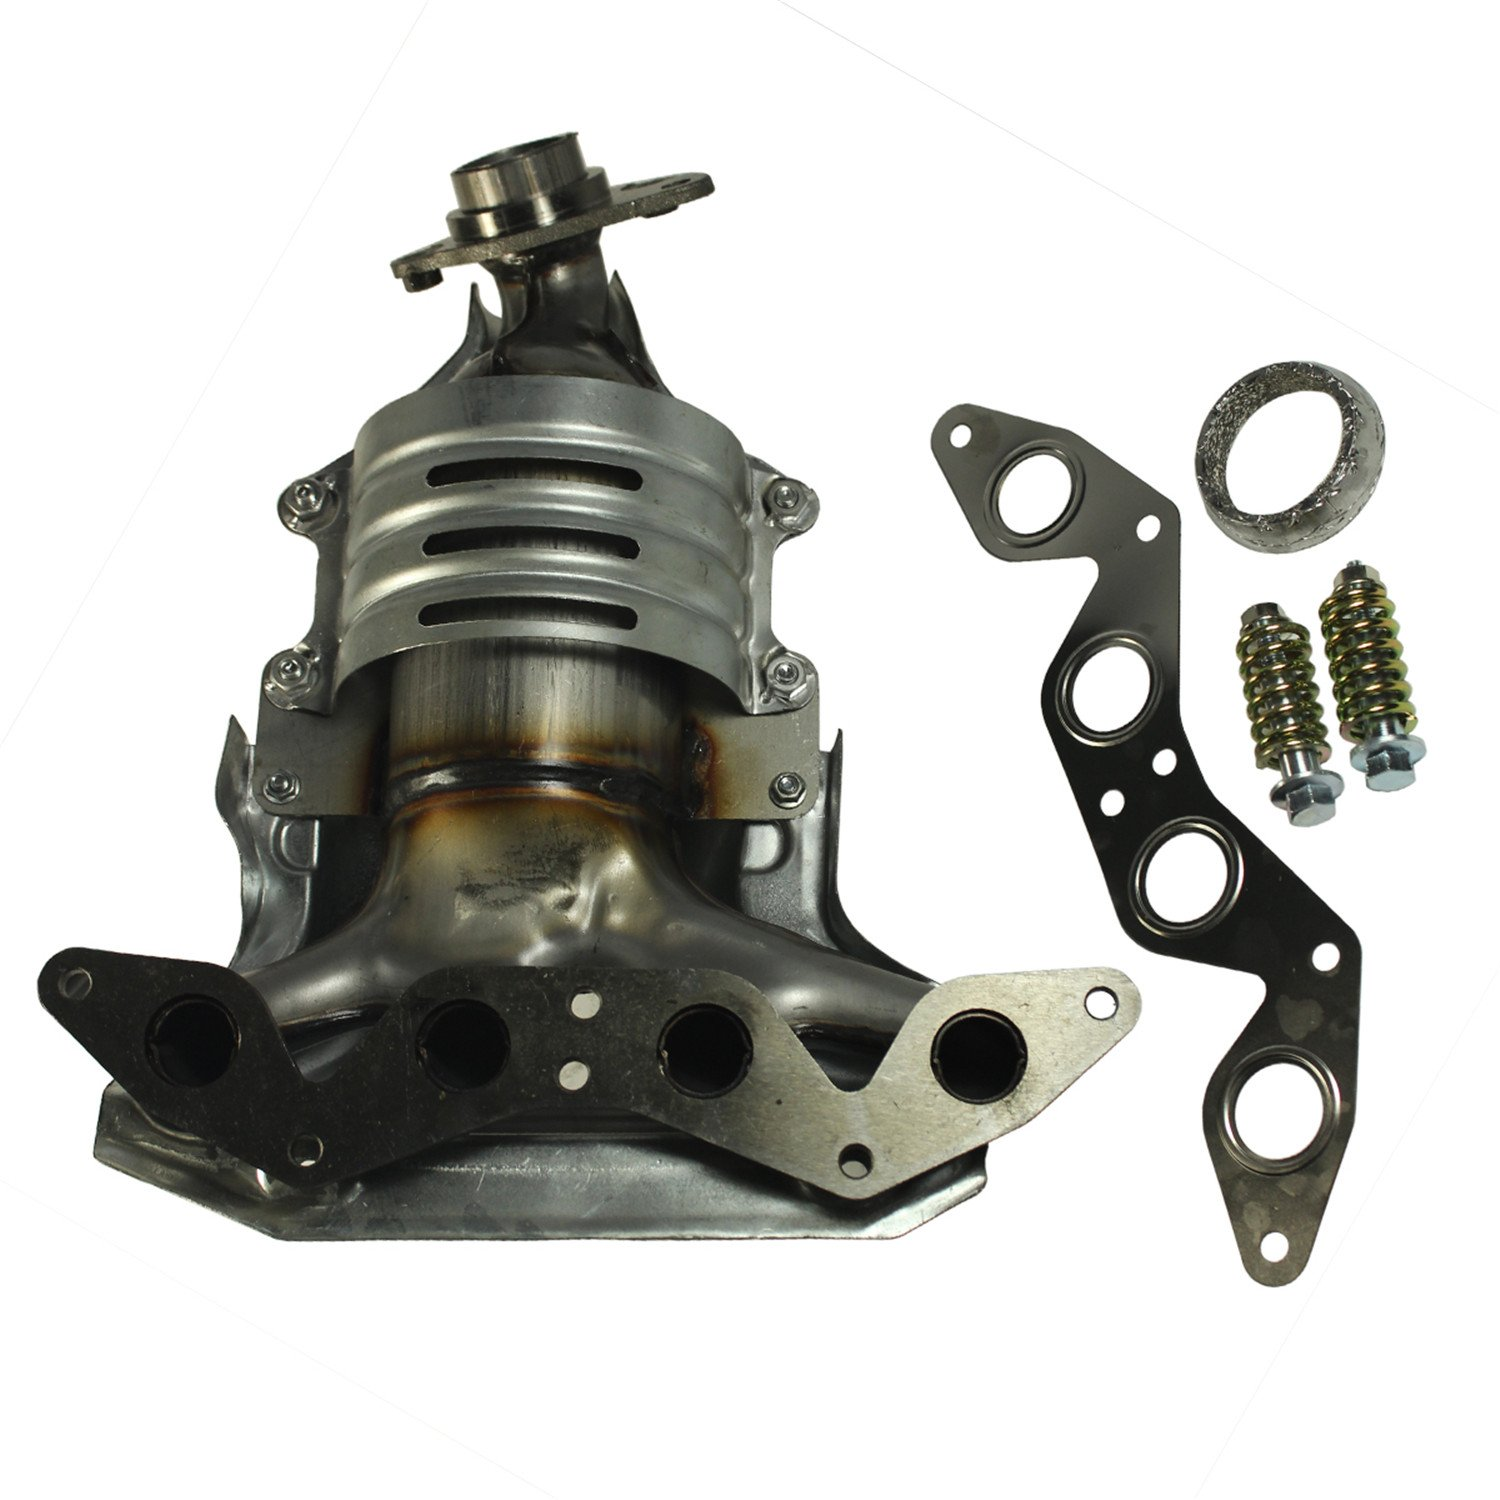 JDMSPEED New 674-608 Exhaust Manifold W/Catalytic Converter For Honda Civic 1.7L L4 SOHC